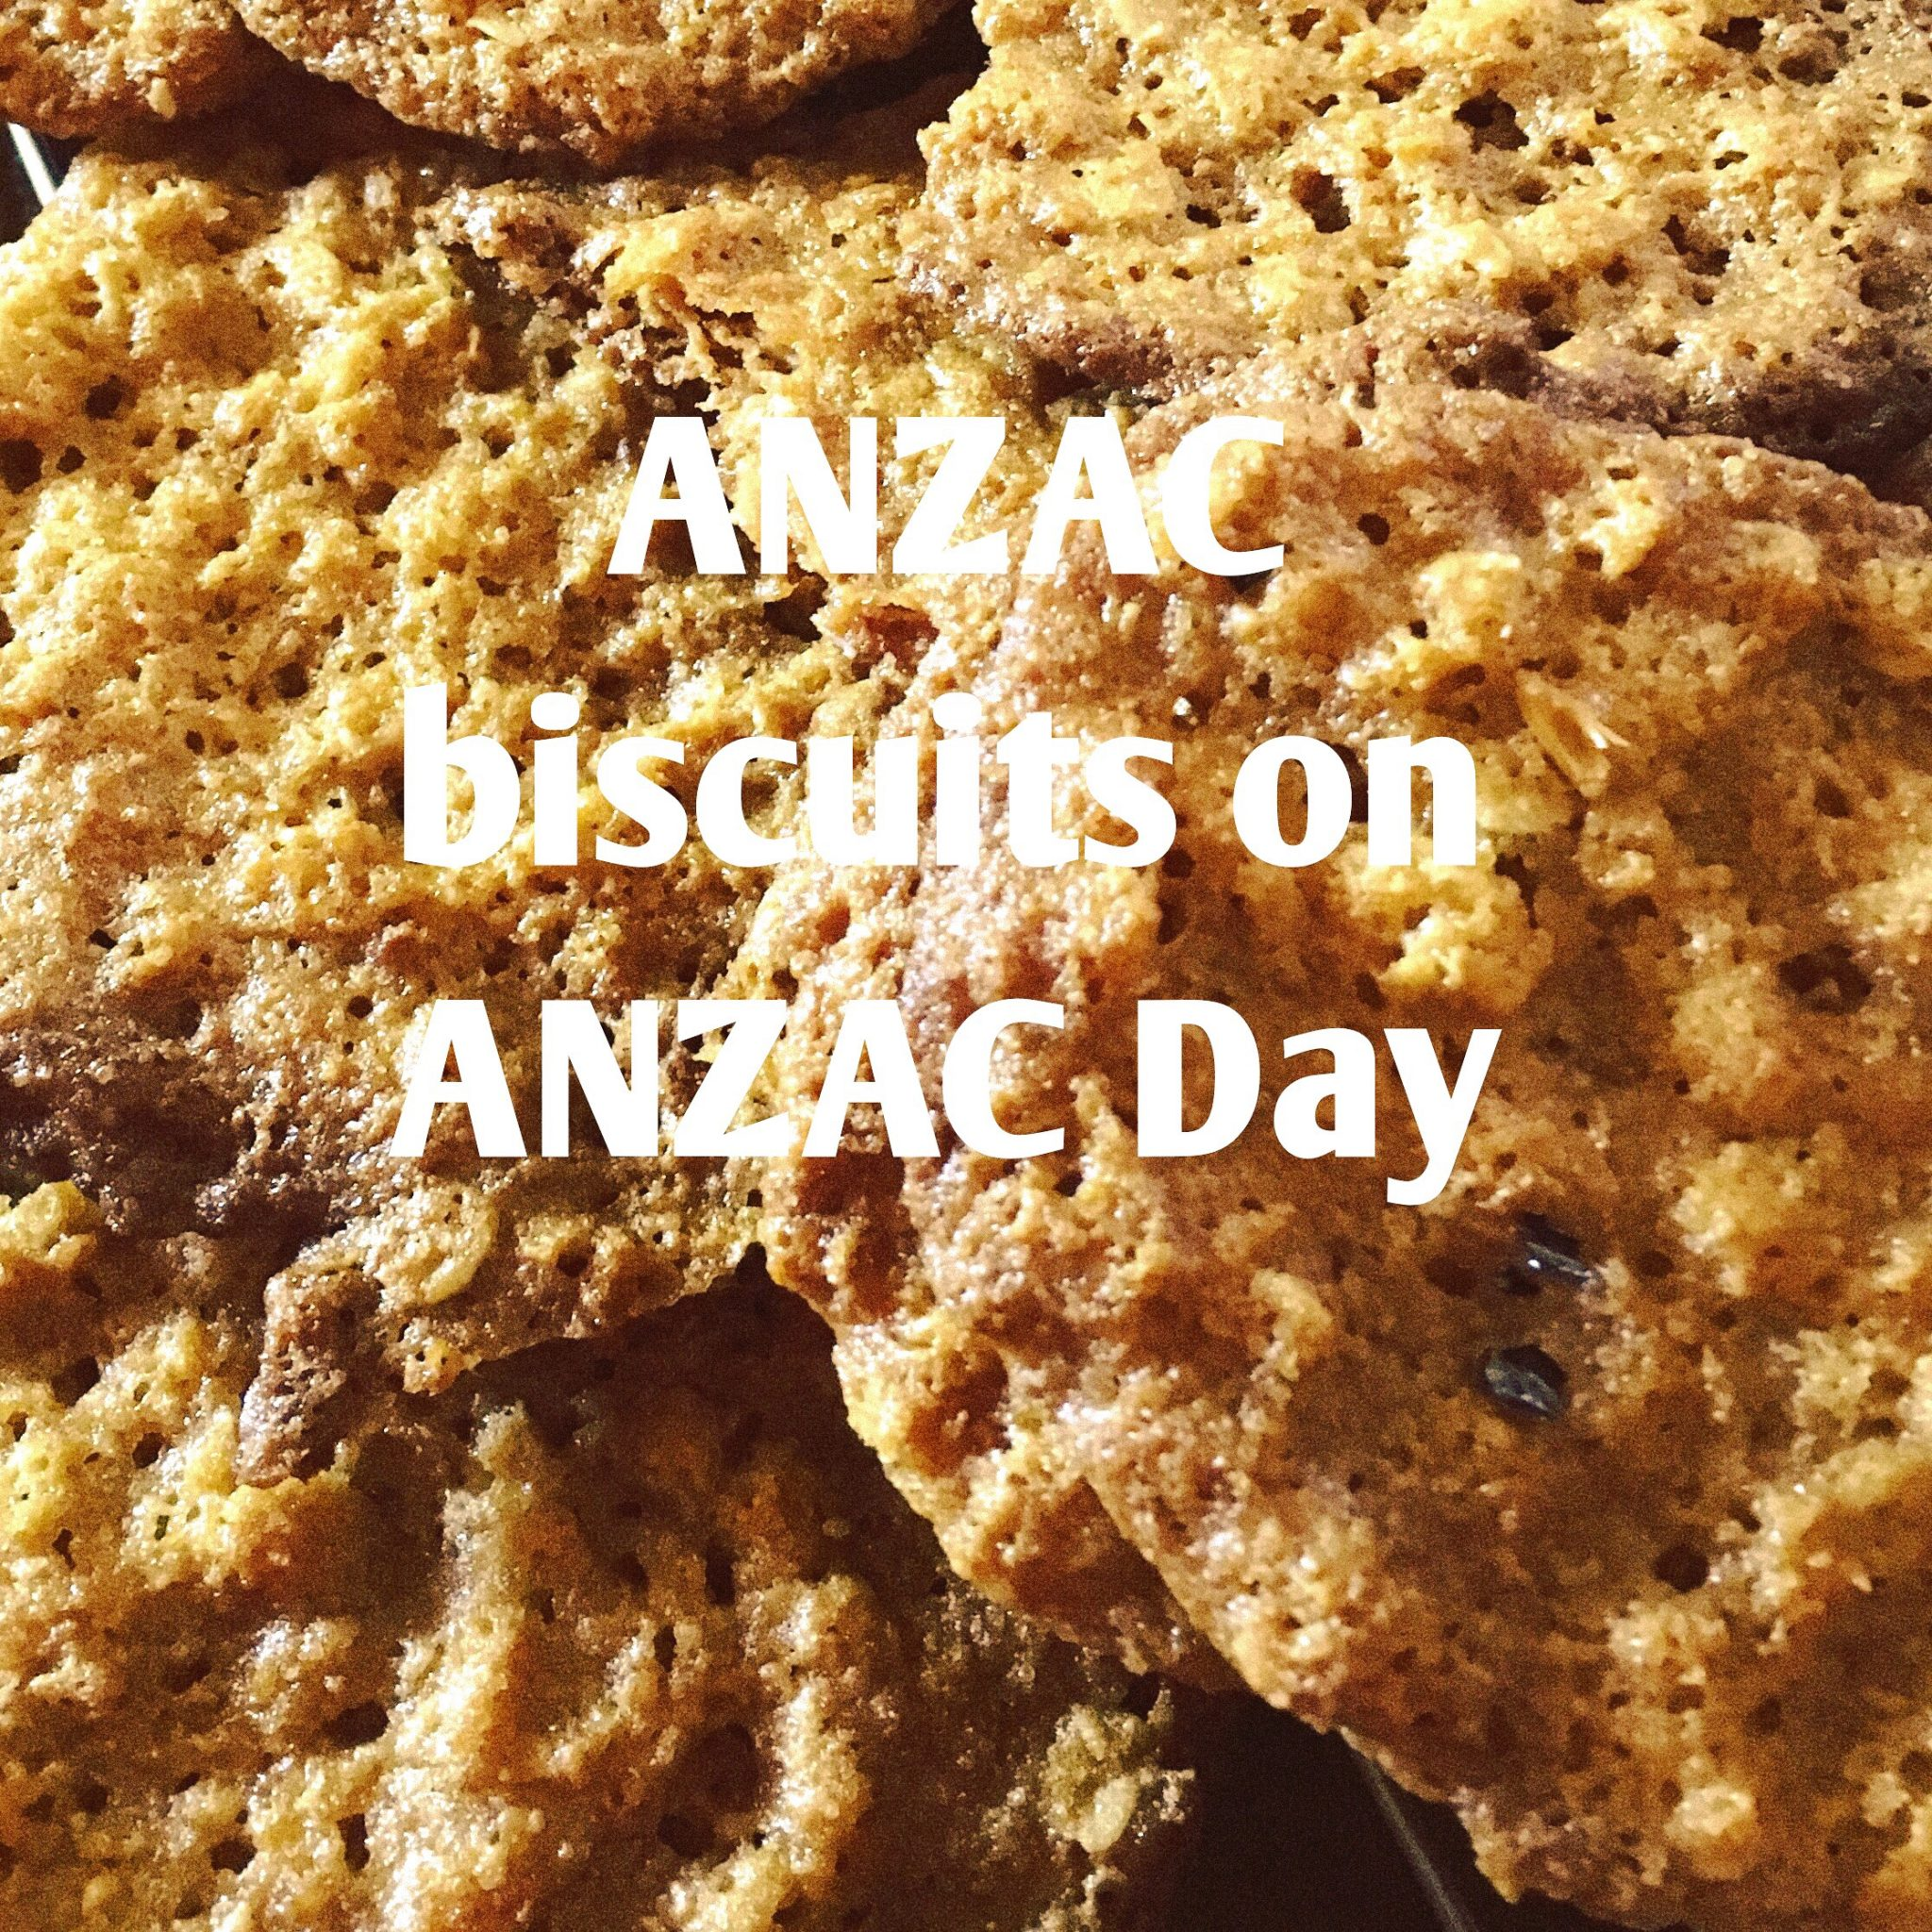 ANZAC biscuits on ANZAC Day